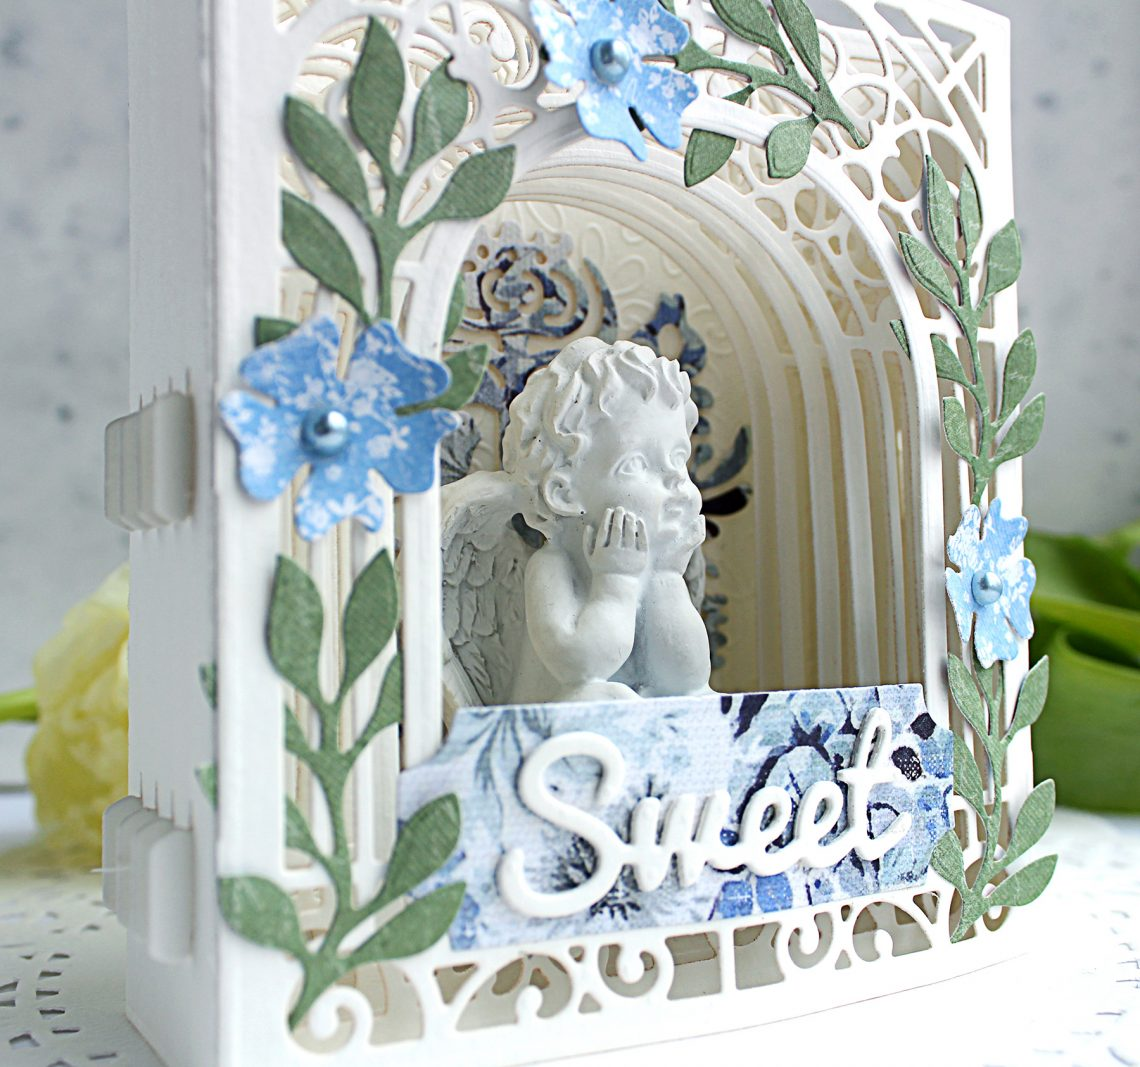 Video Friday | Paper Diorama / Figurine Holder with Olga using S3-303 Little Plants, S4-563 Phrase Set One, S4-883 Nordic Tree, S5-338 Wreath Elements, S6-138 Grand Arch 3D Card, SES-013 Flourish Stitch #spellbinders #diecutting